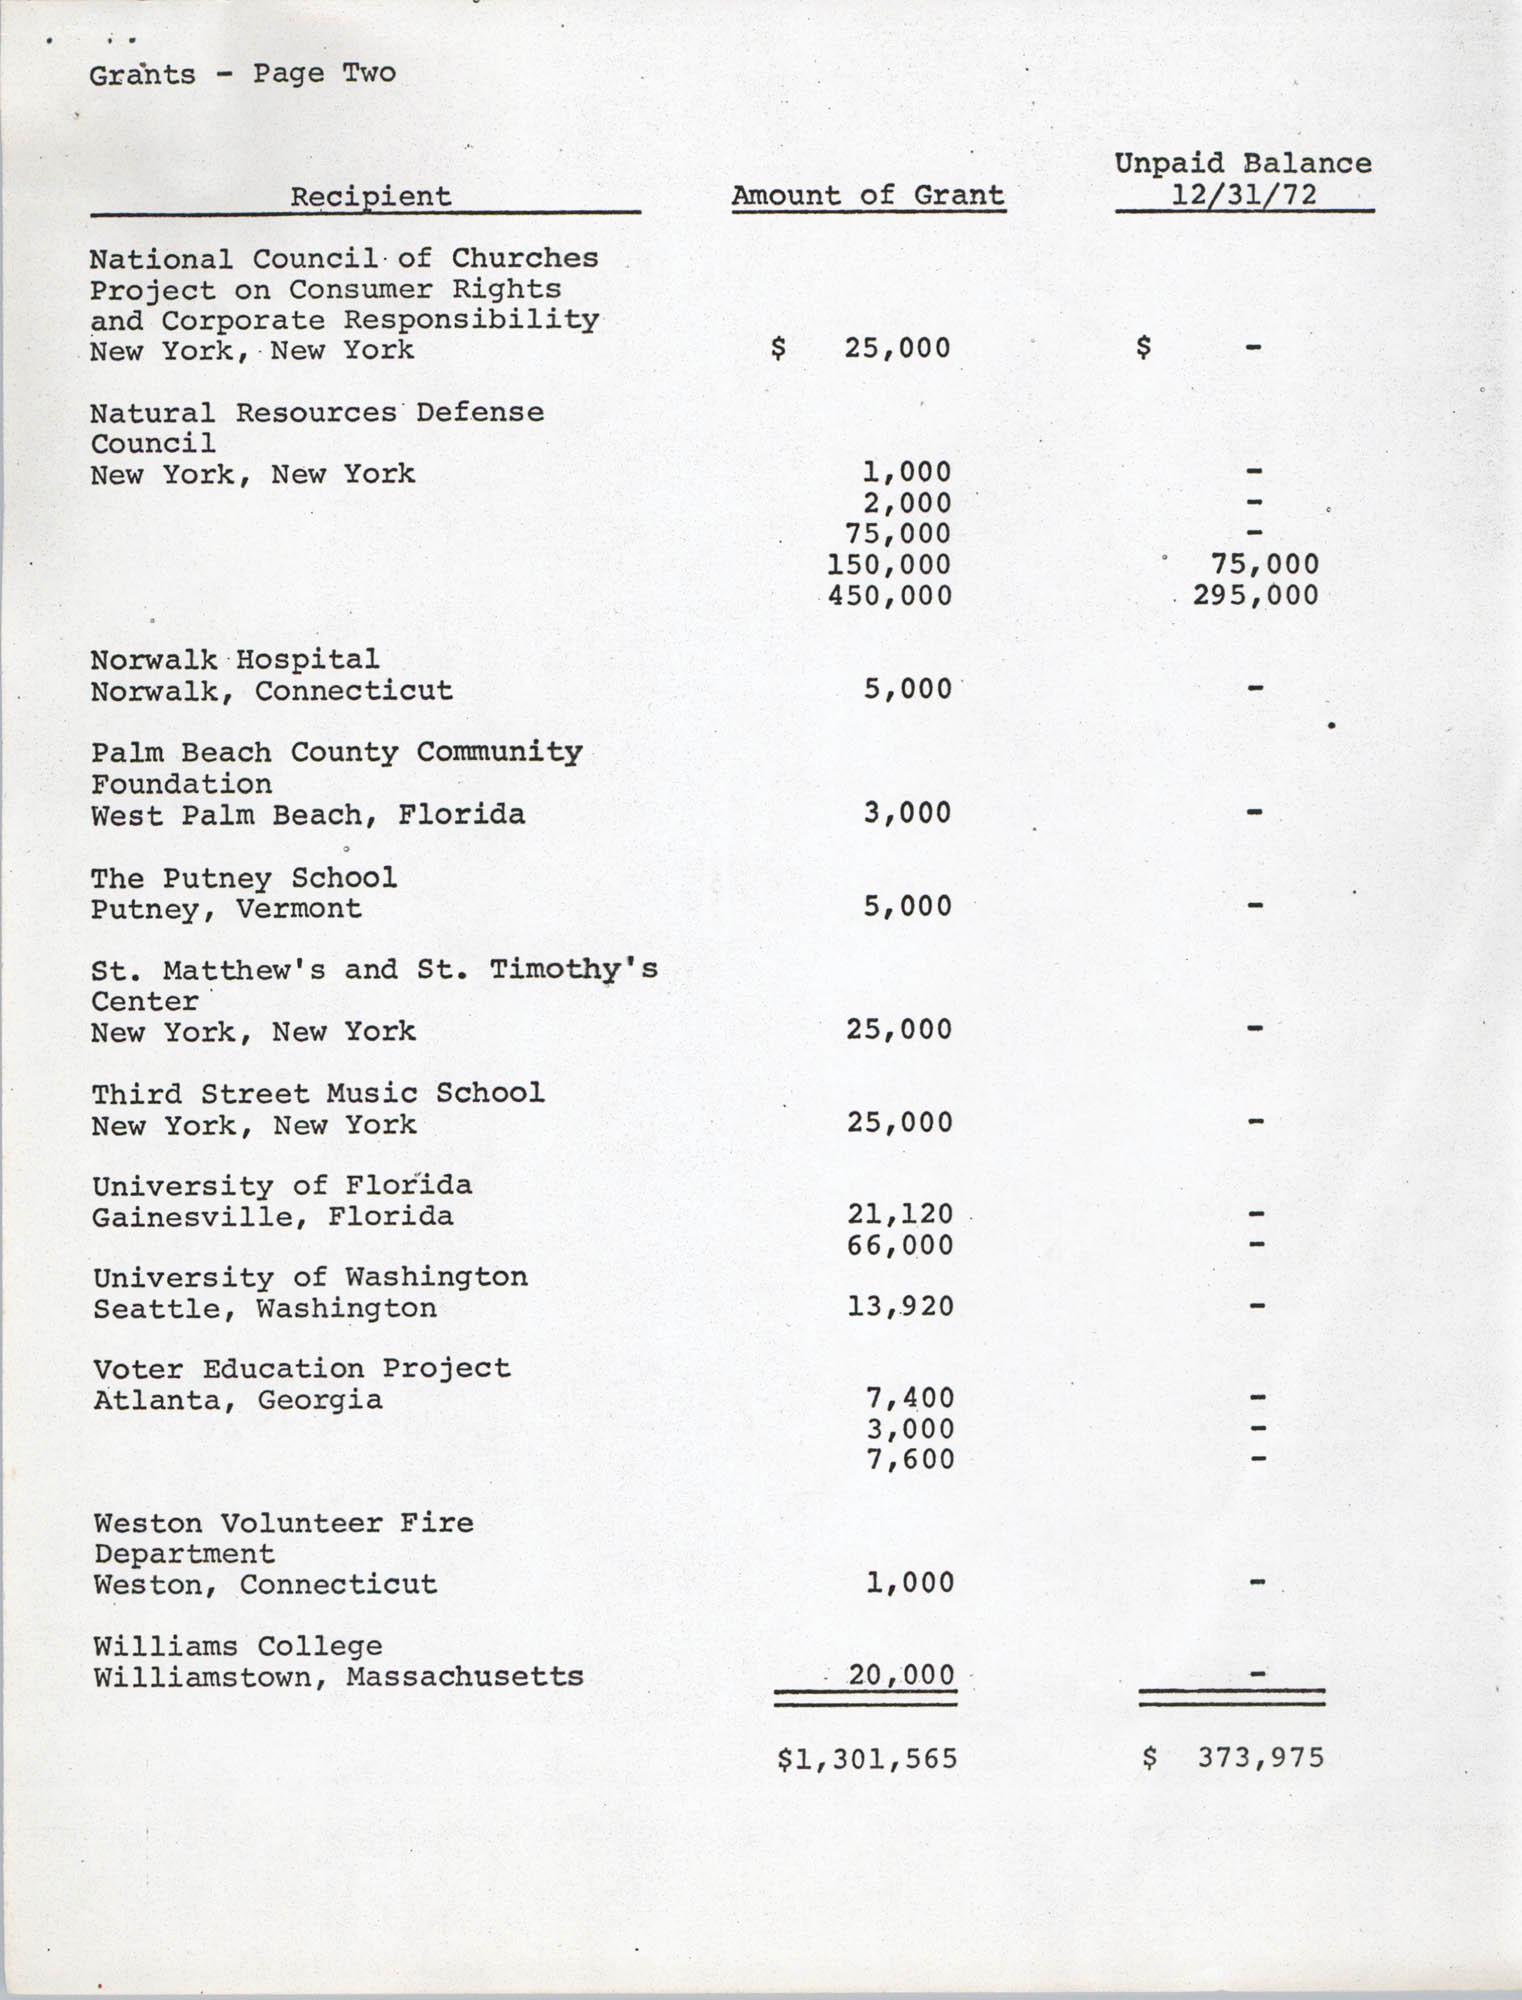 Josephine H. McIntosh Foundation Grant-Making Activities Report for 1972, Grants Page 2